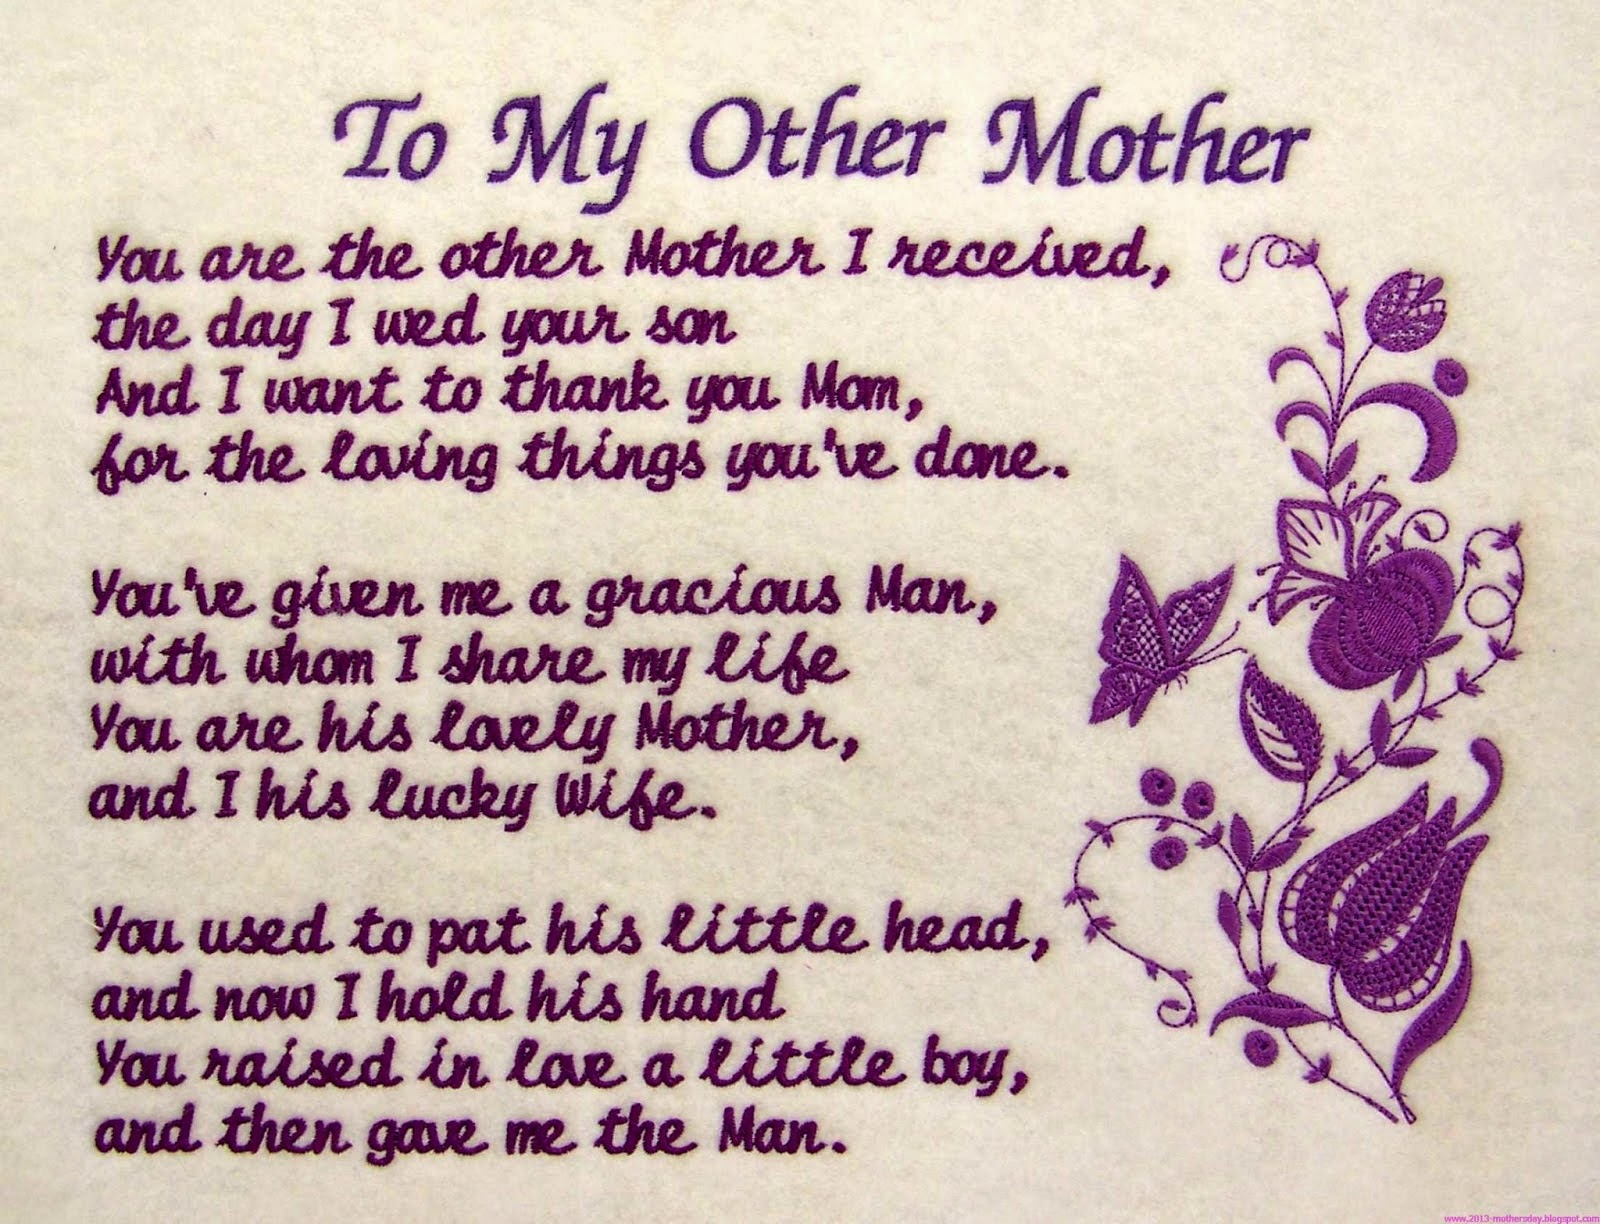 Quotes In Spanish About Friendship Mothers Day Quotes In Spanish For A Friend Funny Mothers Day